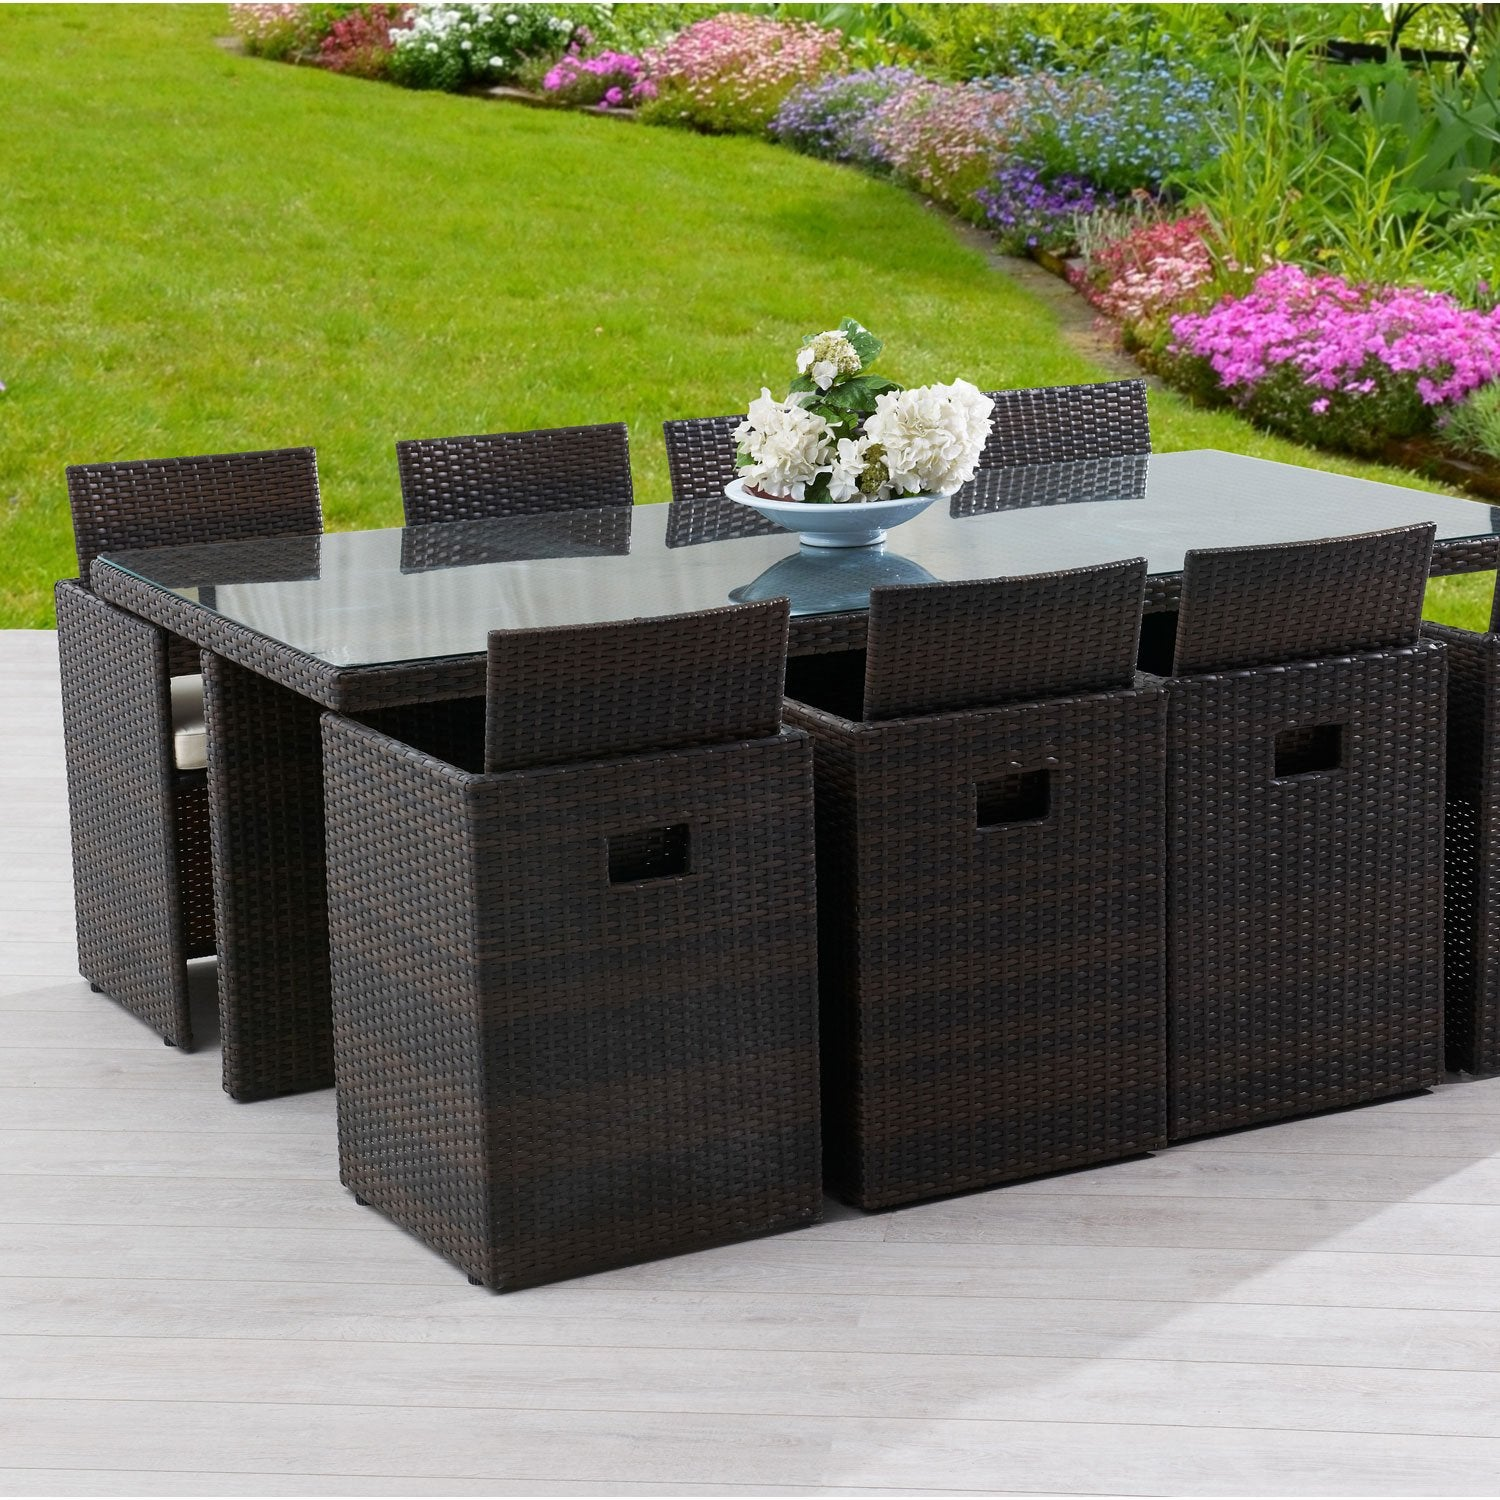 Salon de jardin encastrable r sine tress e marron 1 table for Table de jardin modulable